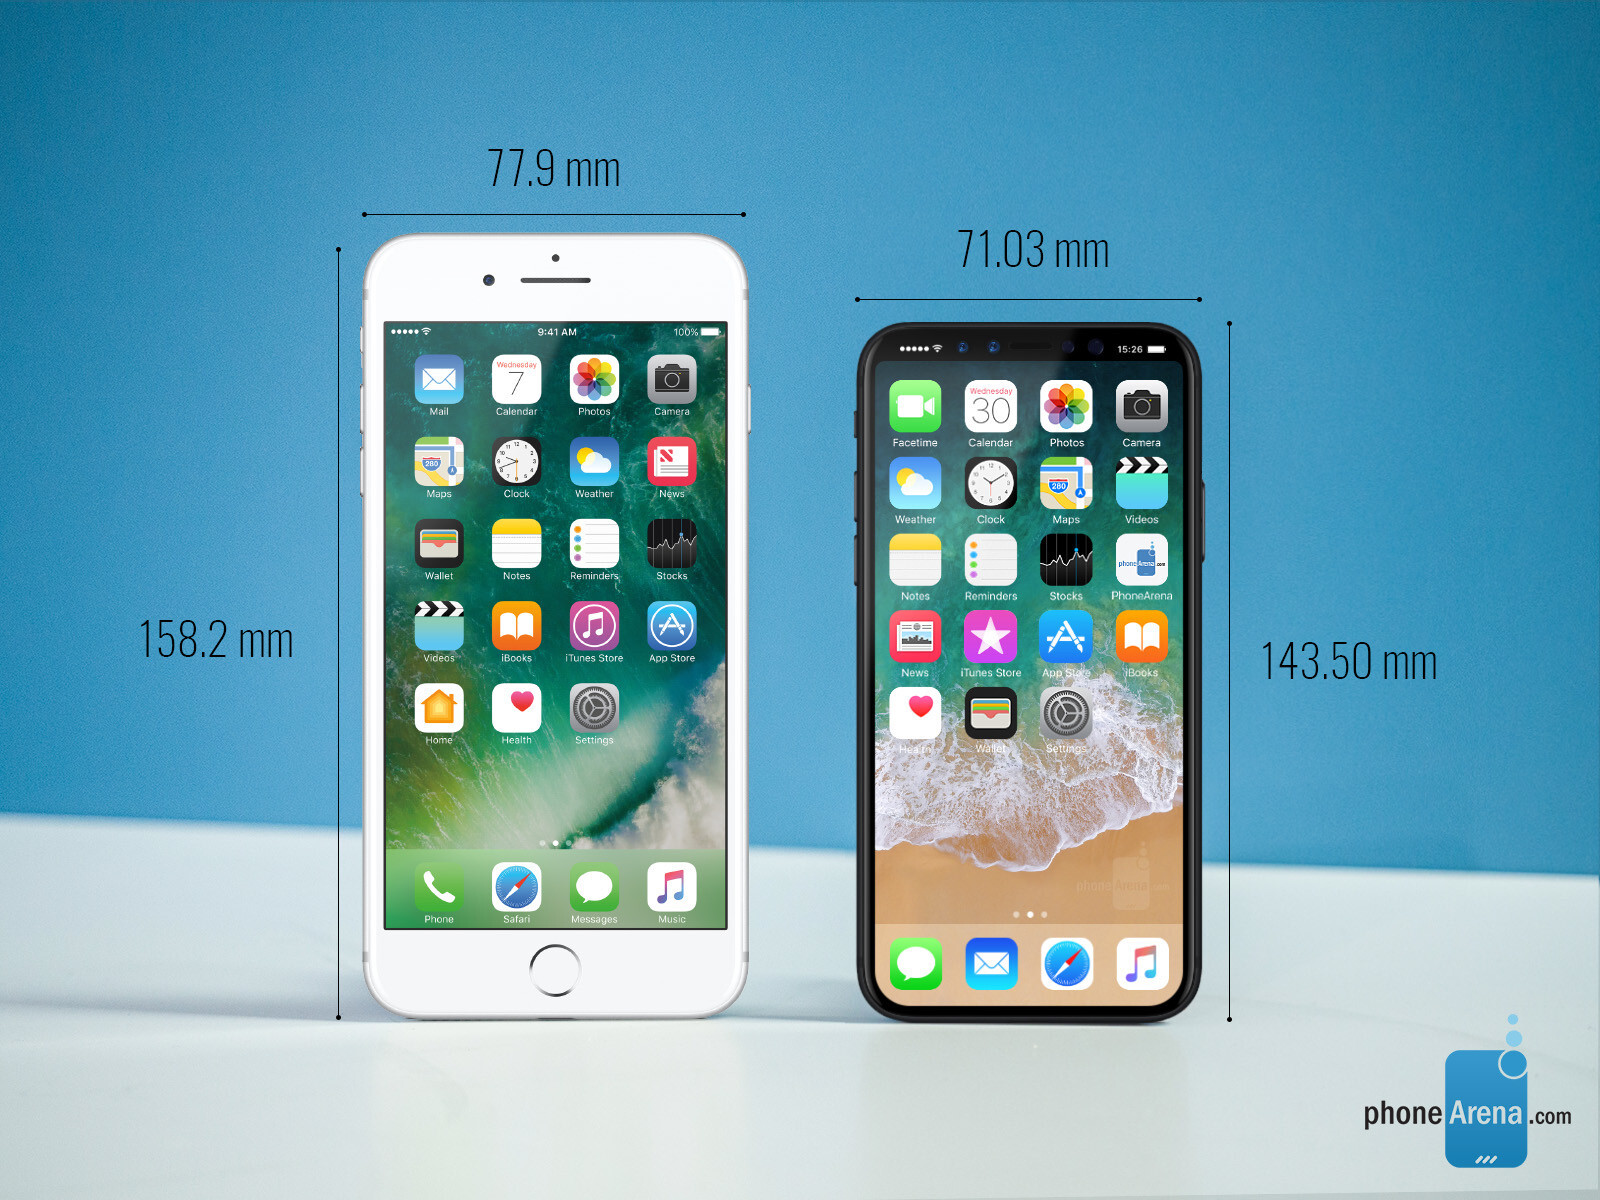 Apple iPhone 7 Plus vs Apple iPhone 8 size comparison